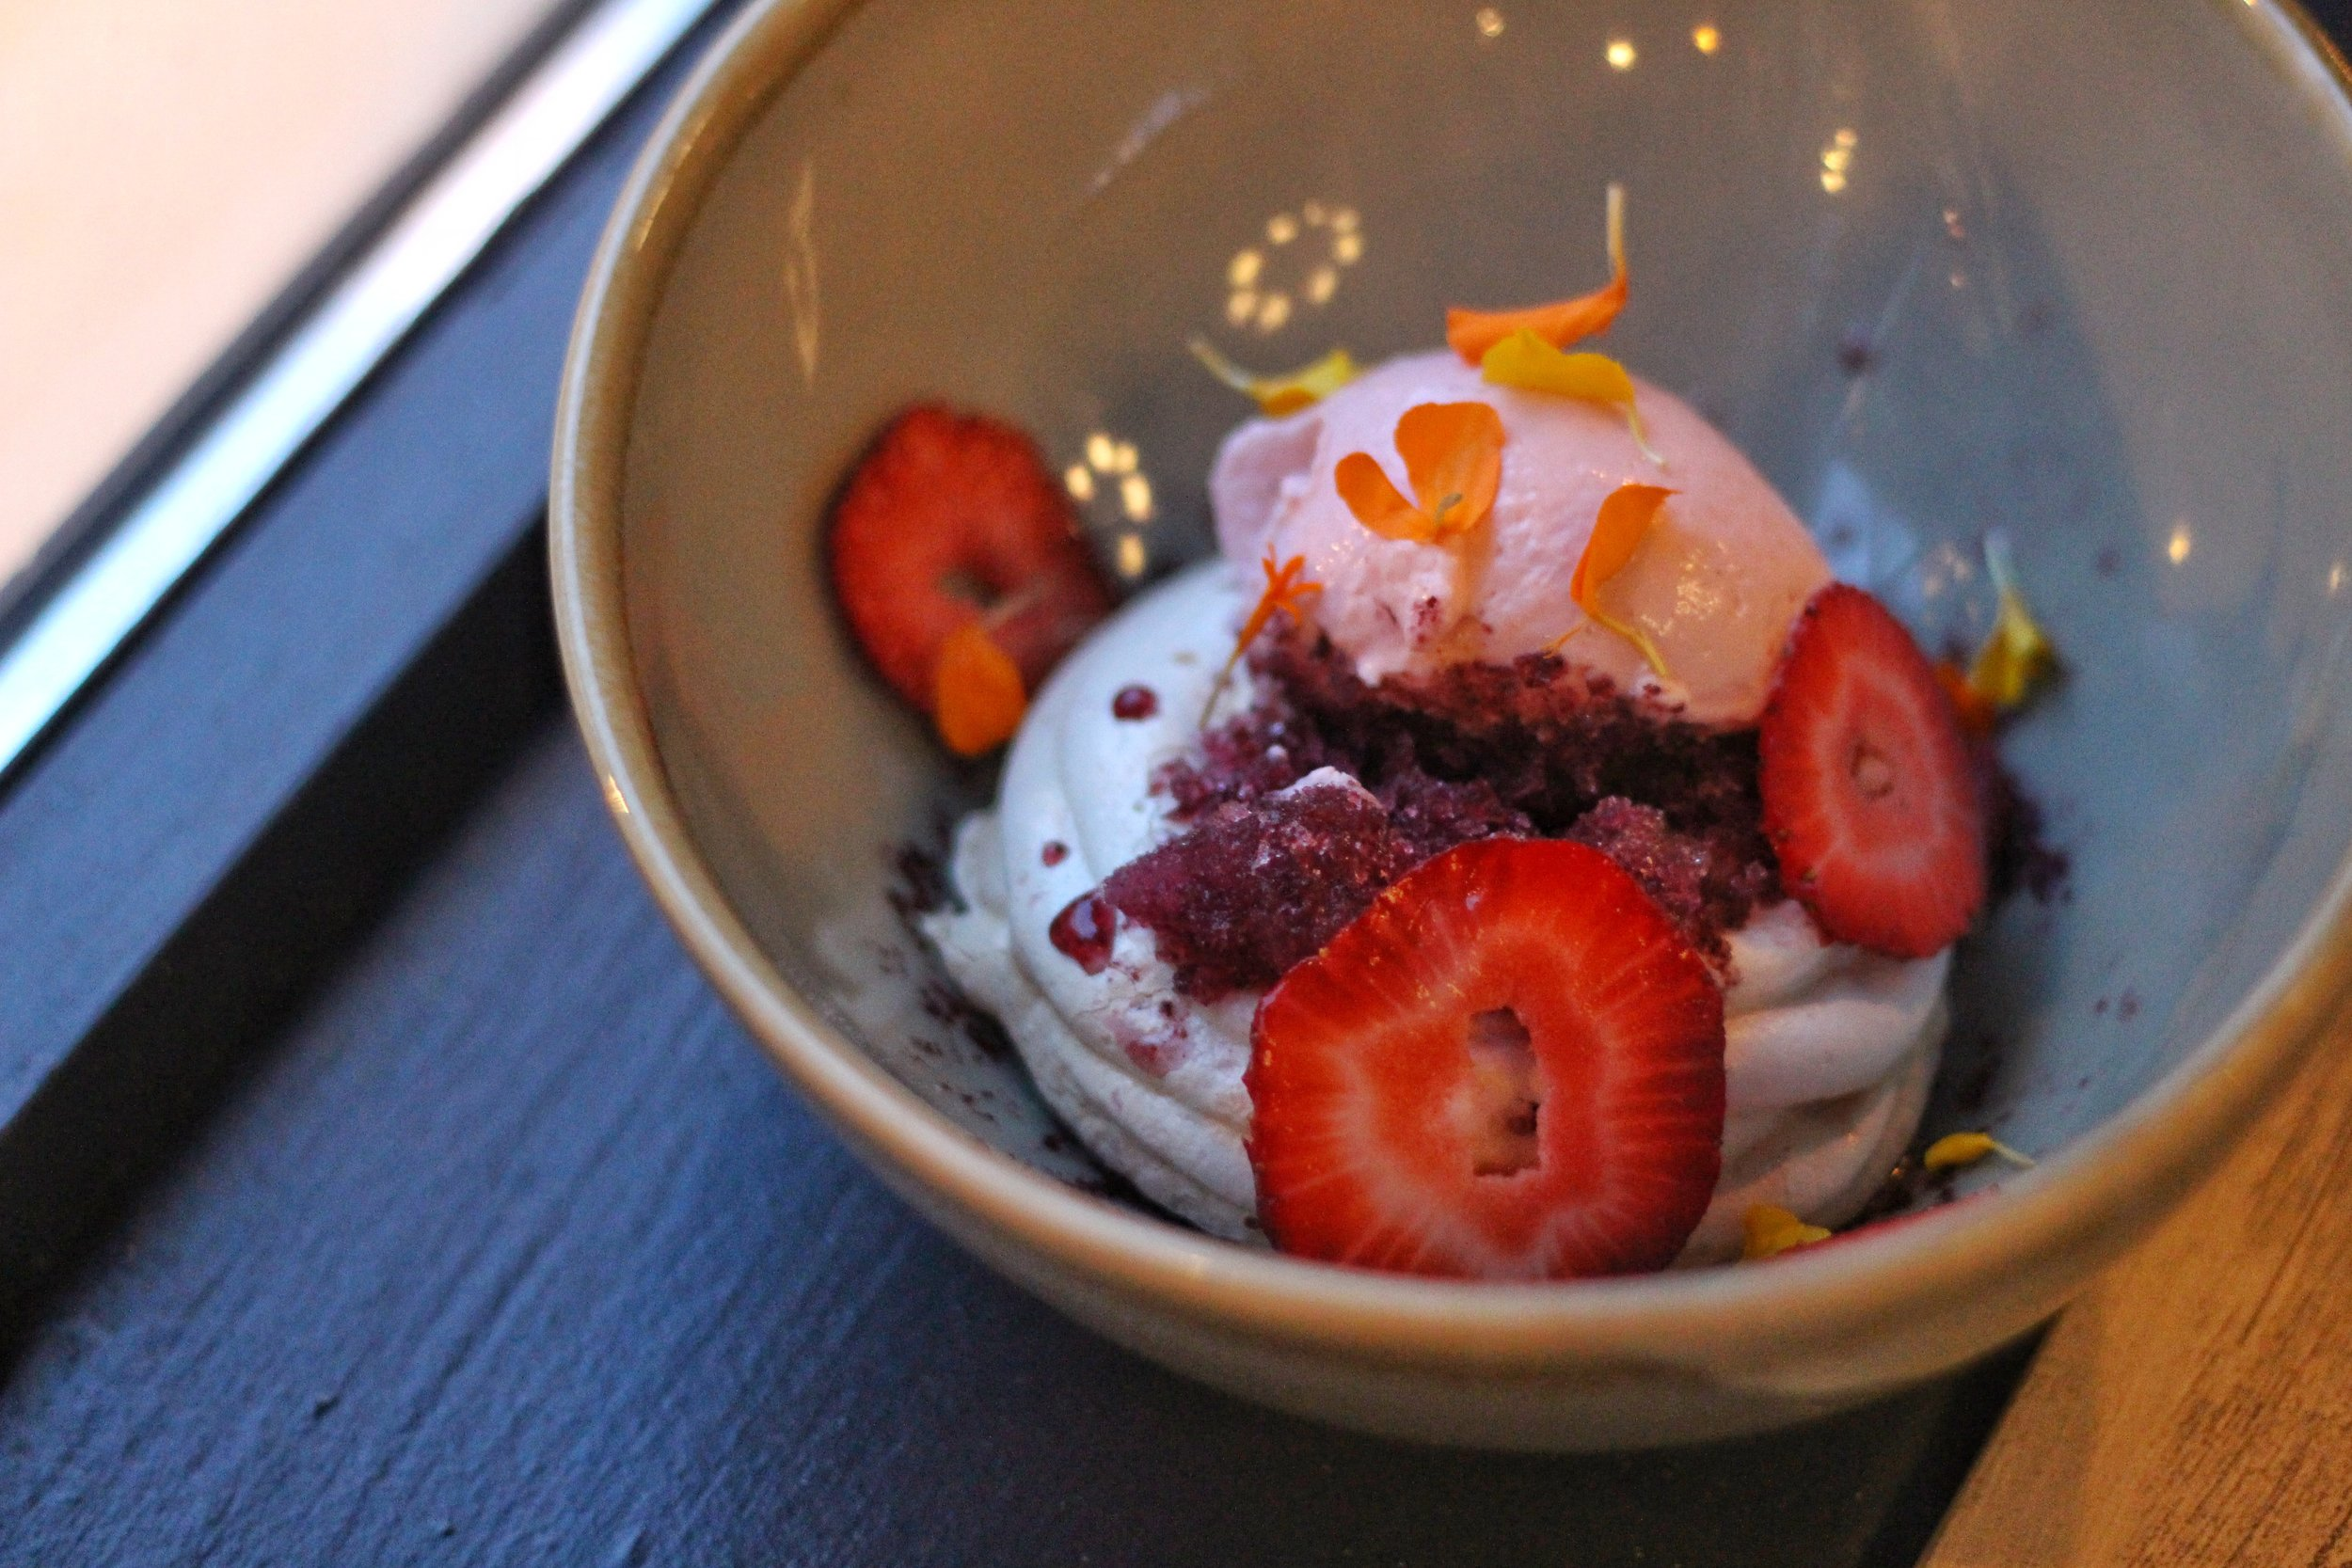 Berries & Cream  – pavlova, vanilla custard, lavender blueberry granite, strawberry mousse, seasonal berries